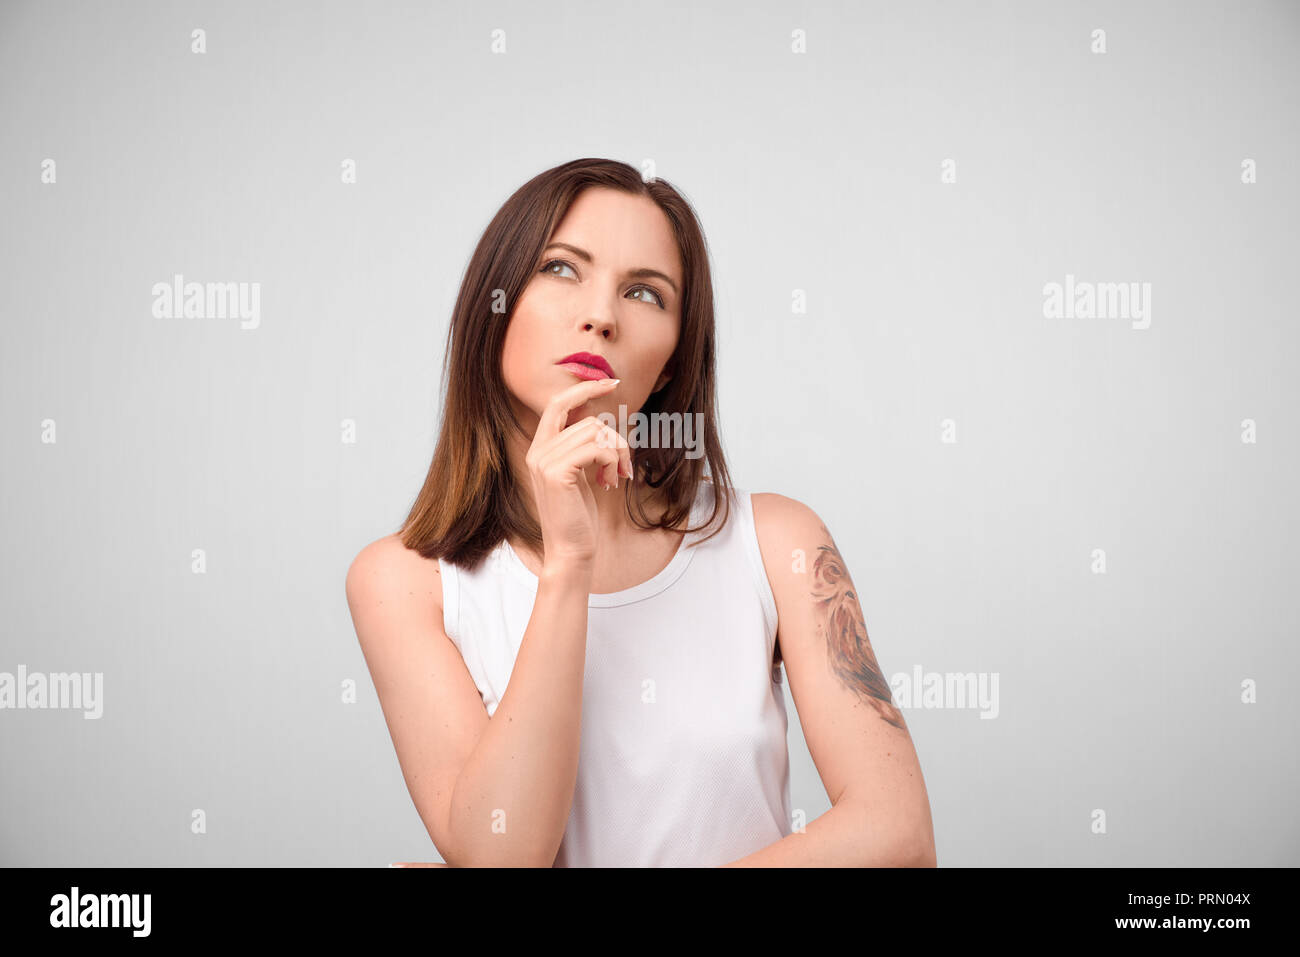 Beautiful brunette female with puzzled expression, keeps finger on lips, looks aside with bewilderment, poses against gray background. Body language a - Stock Image